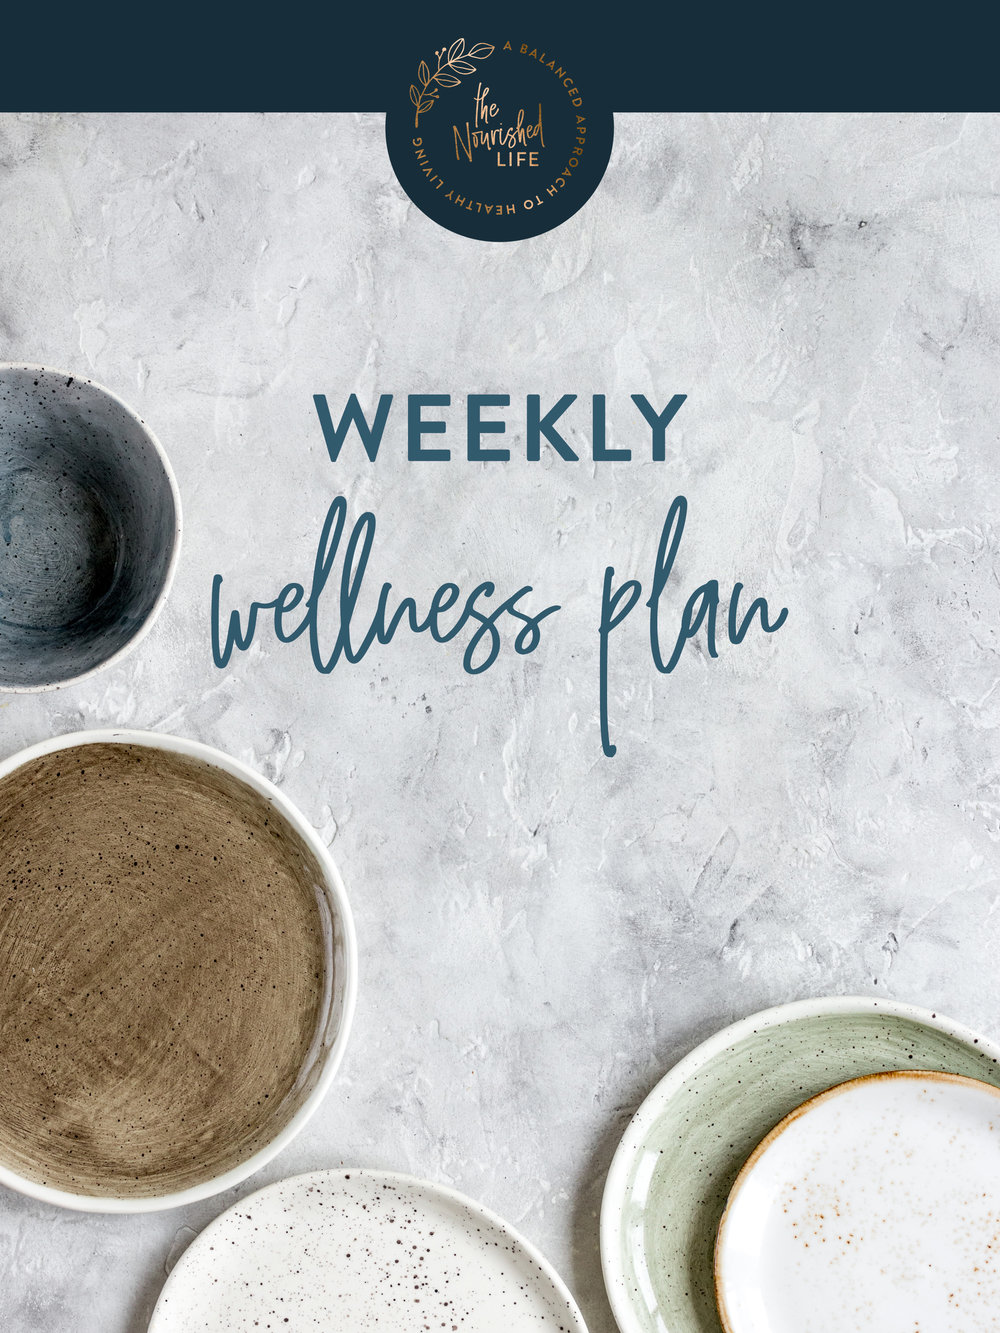 Weekly Wellness Plan | The Nourished Life e-book design by Janessa Rae Design Creative